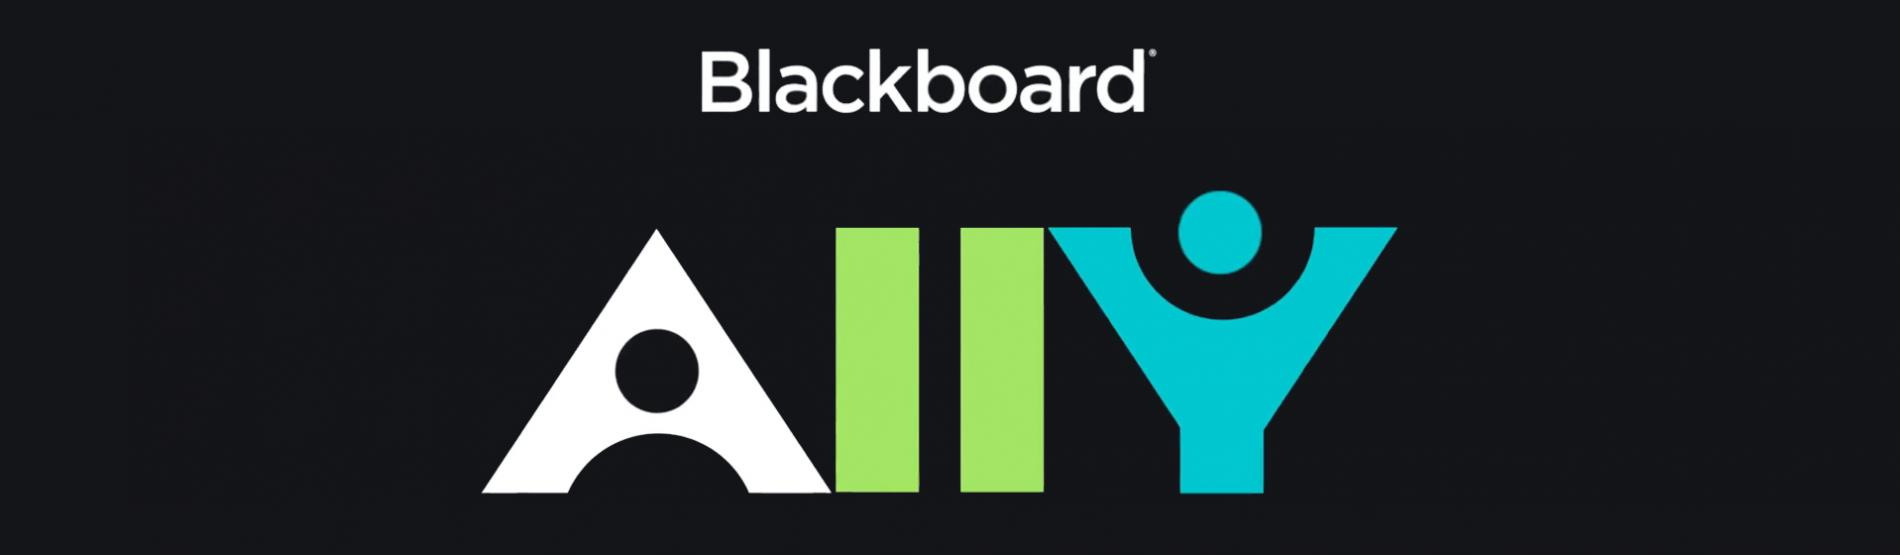 Blackboard Ally - Accessibility Checker